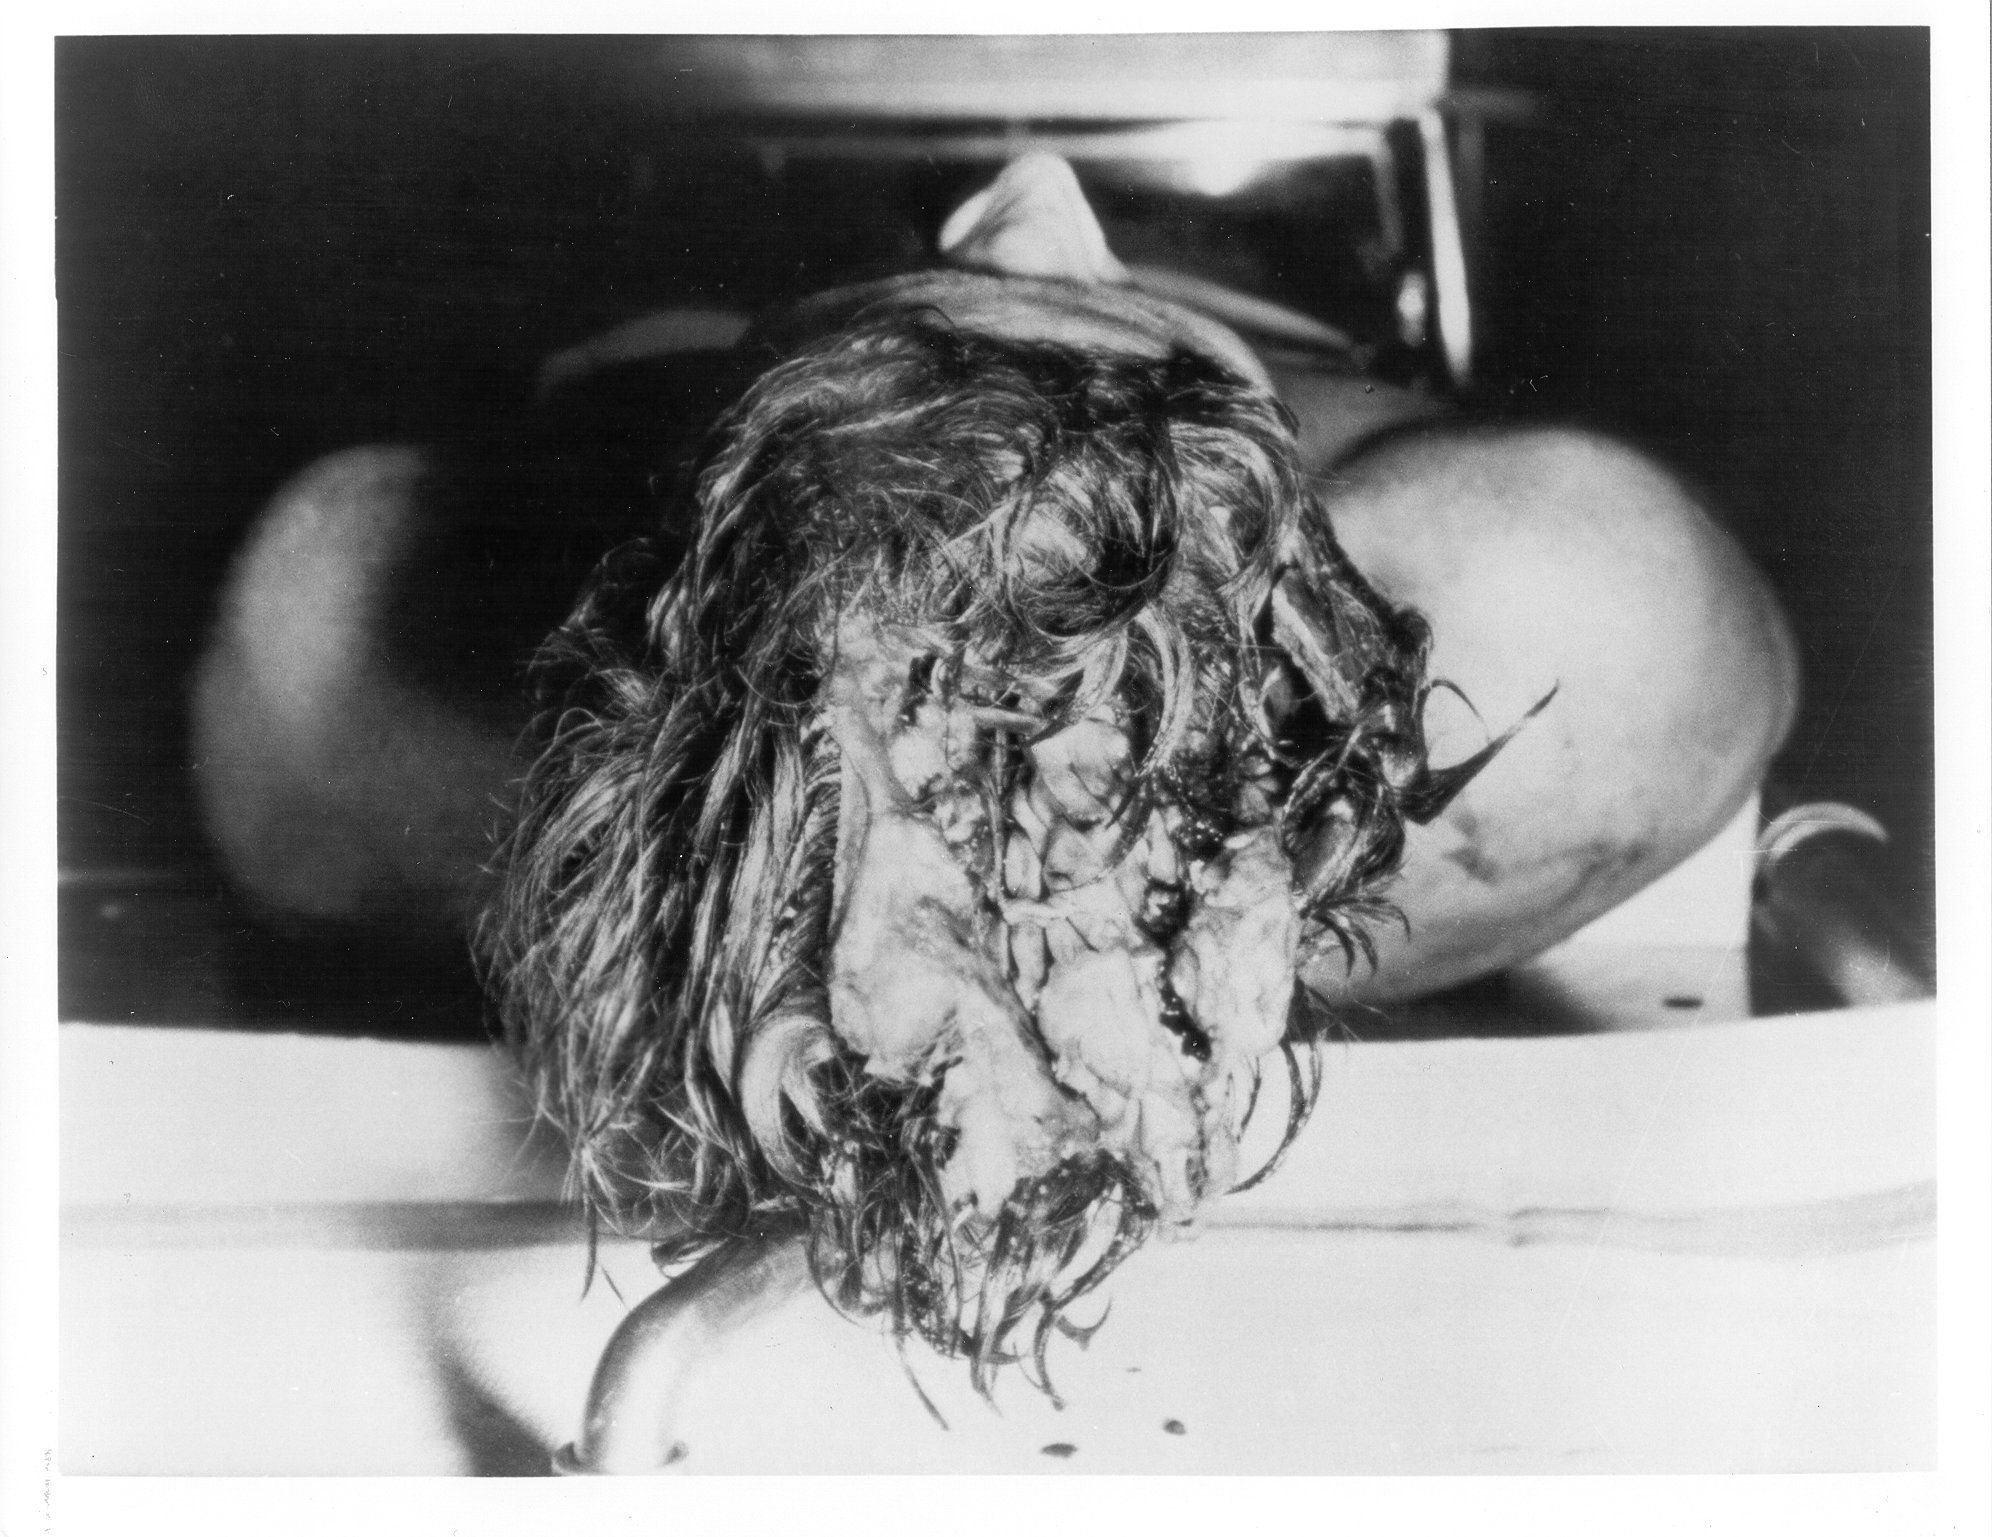 jfk lancer autopsy photos forensics jfk the o jfk lancer autopsy photos